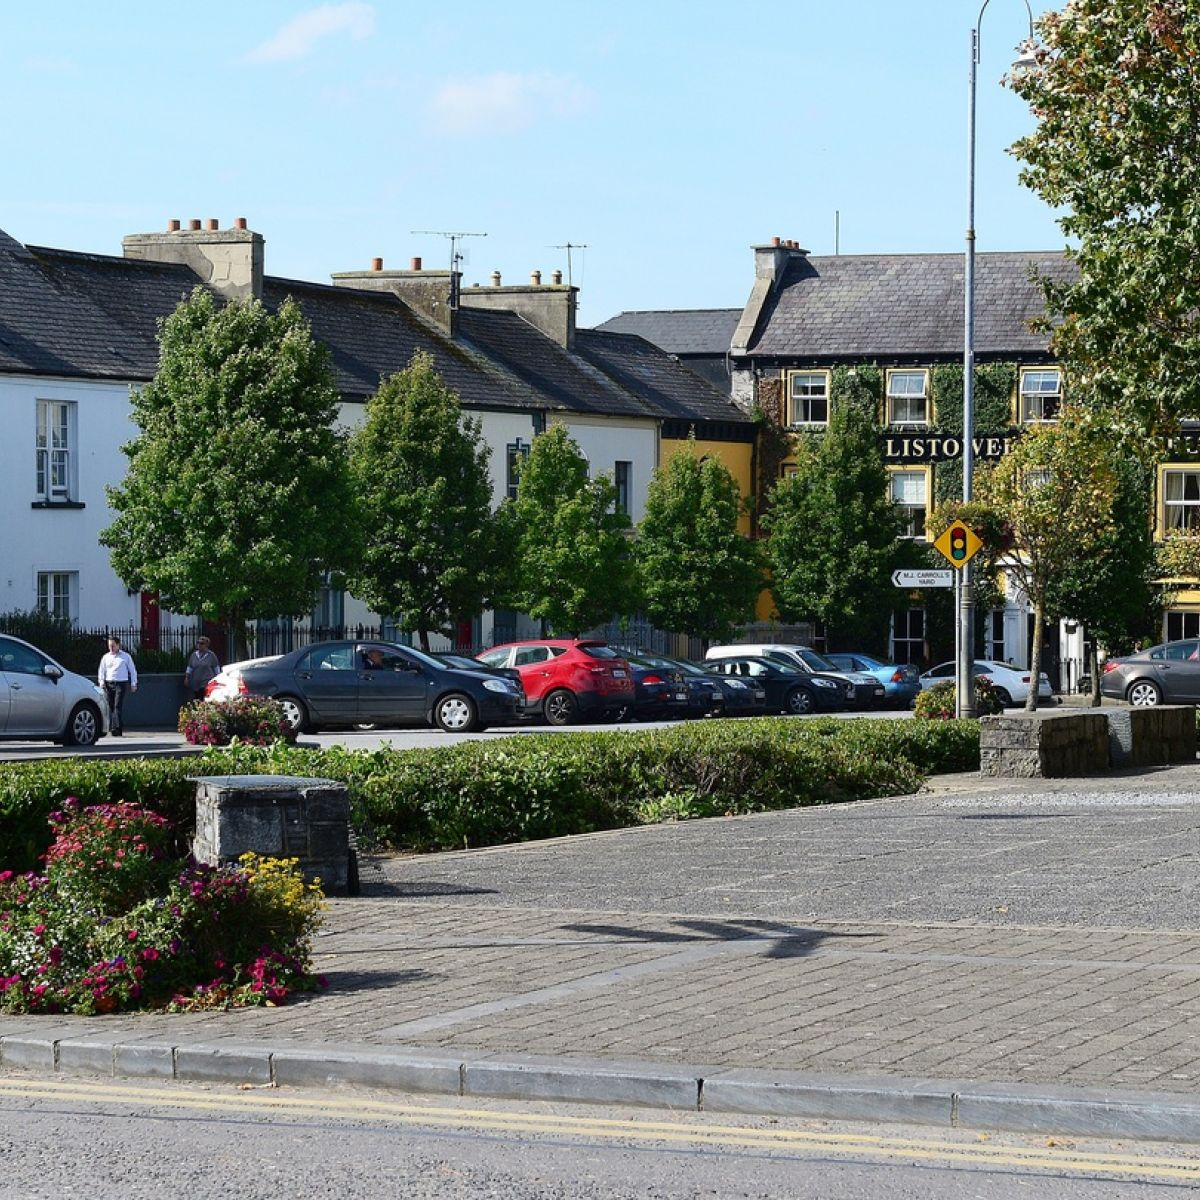 Listowel, Kerry Commercial property priced - brighten-up.uk